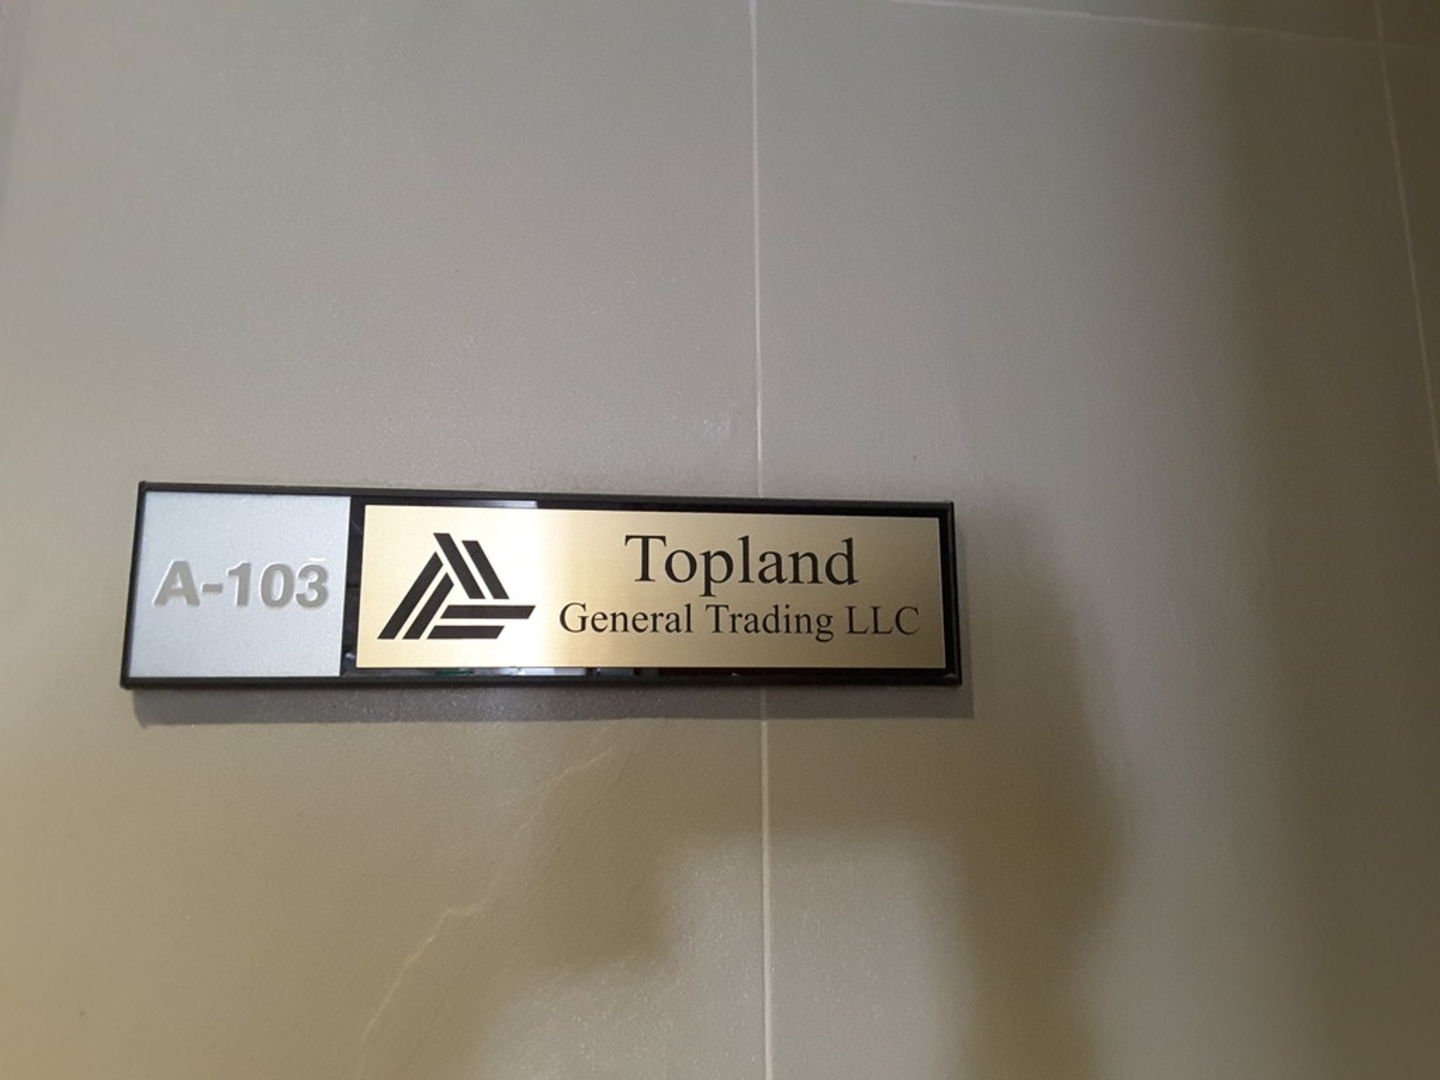 Walif-business-topland-general-trading